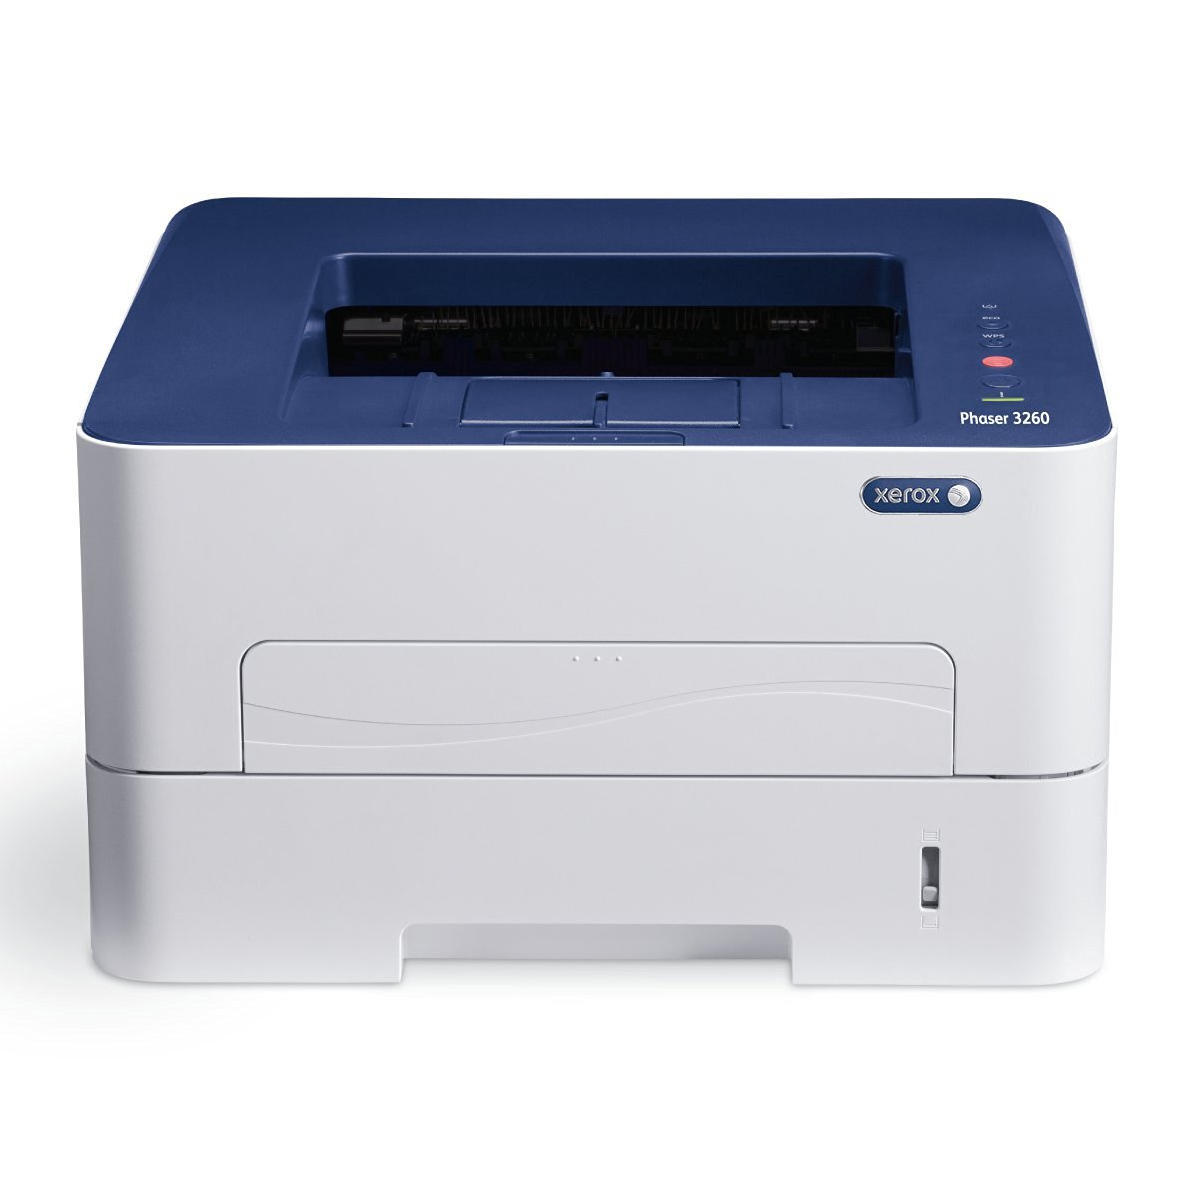 Xerox Phaser 3260/DNI Single Function Monochrome Laser Printer (Phaser 3260)